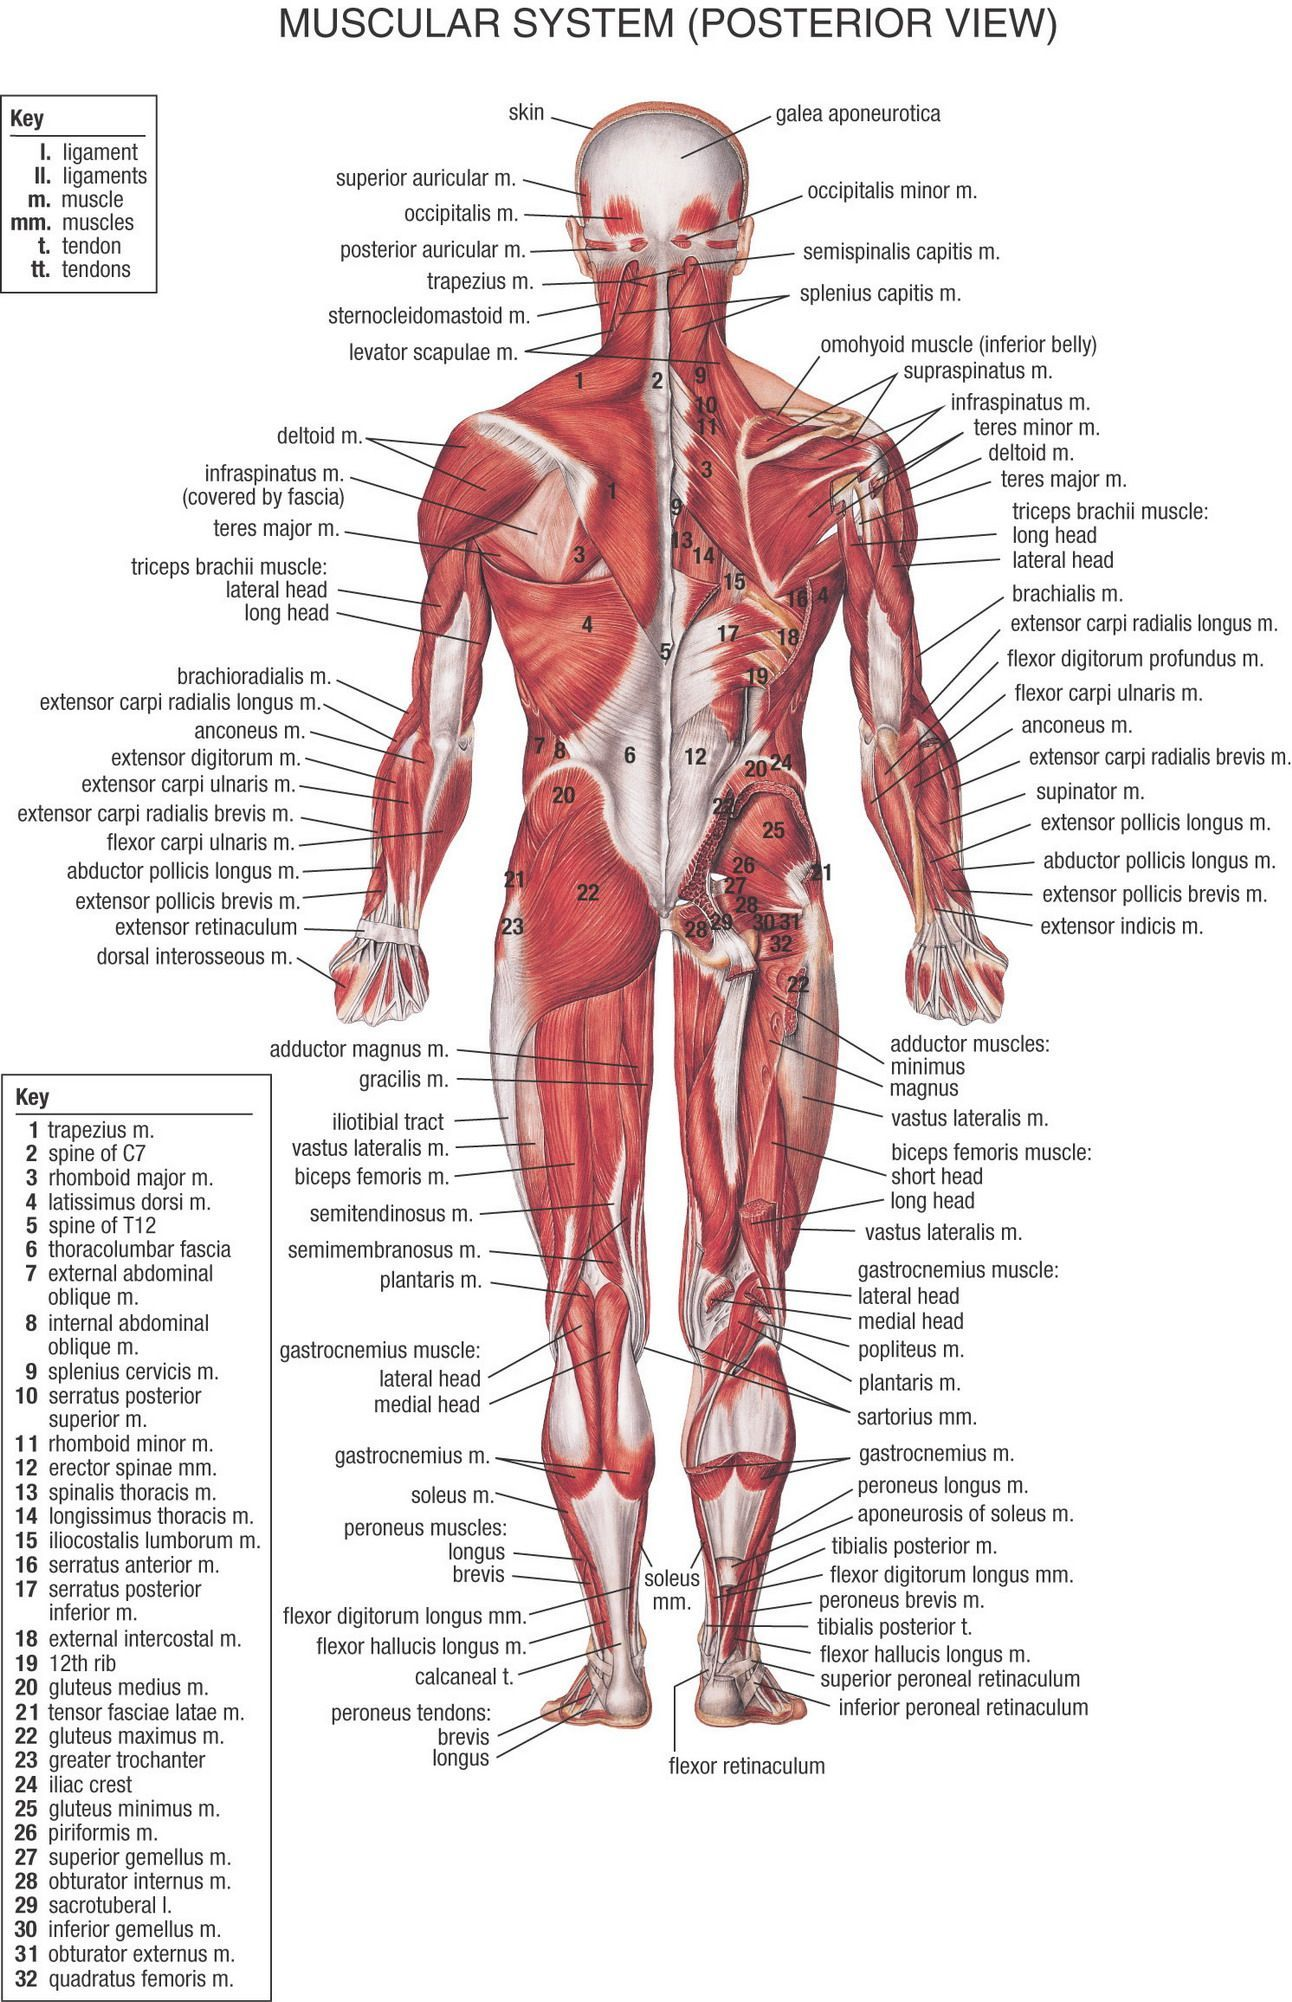 Muscle Diagram Dorsal 2016 Winnebago View Wiring Image Result For Posterior Muscular System Massage Pinterest